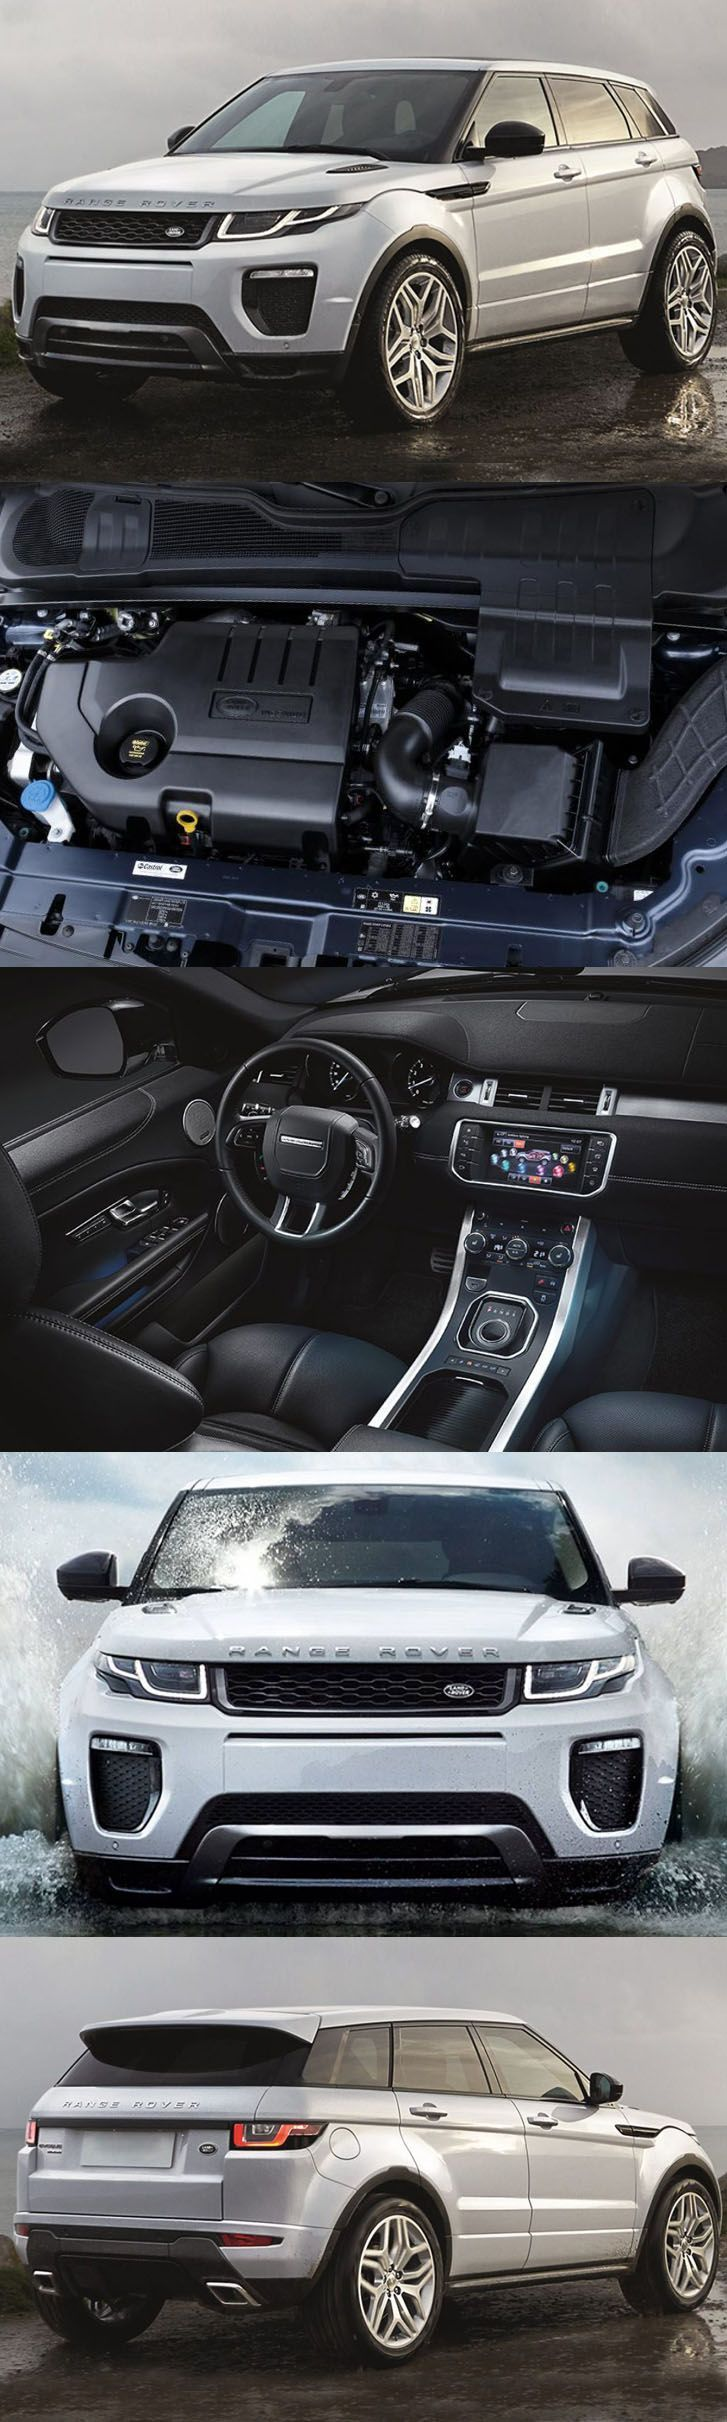 awesome luxury car service best photos